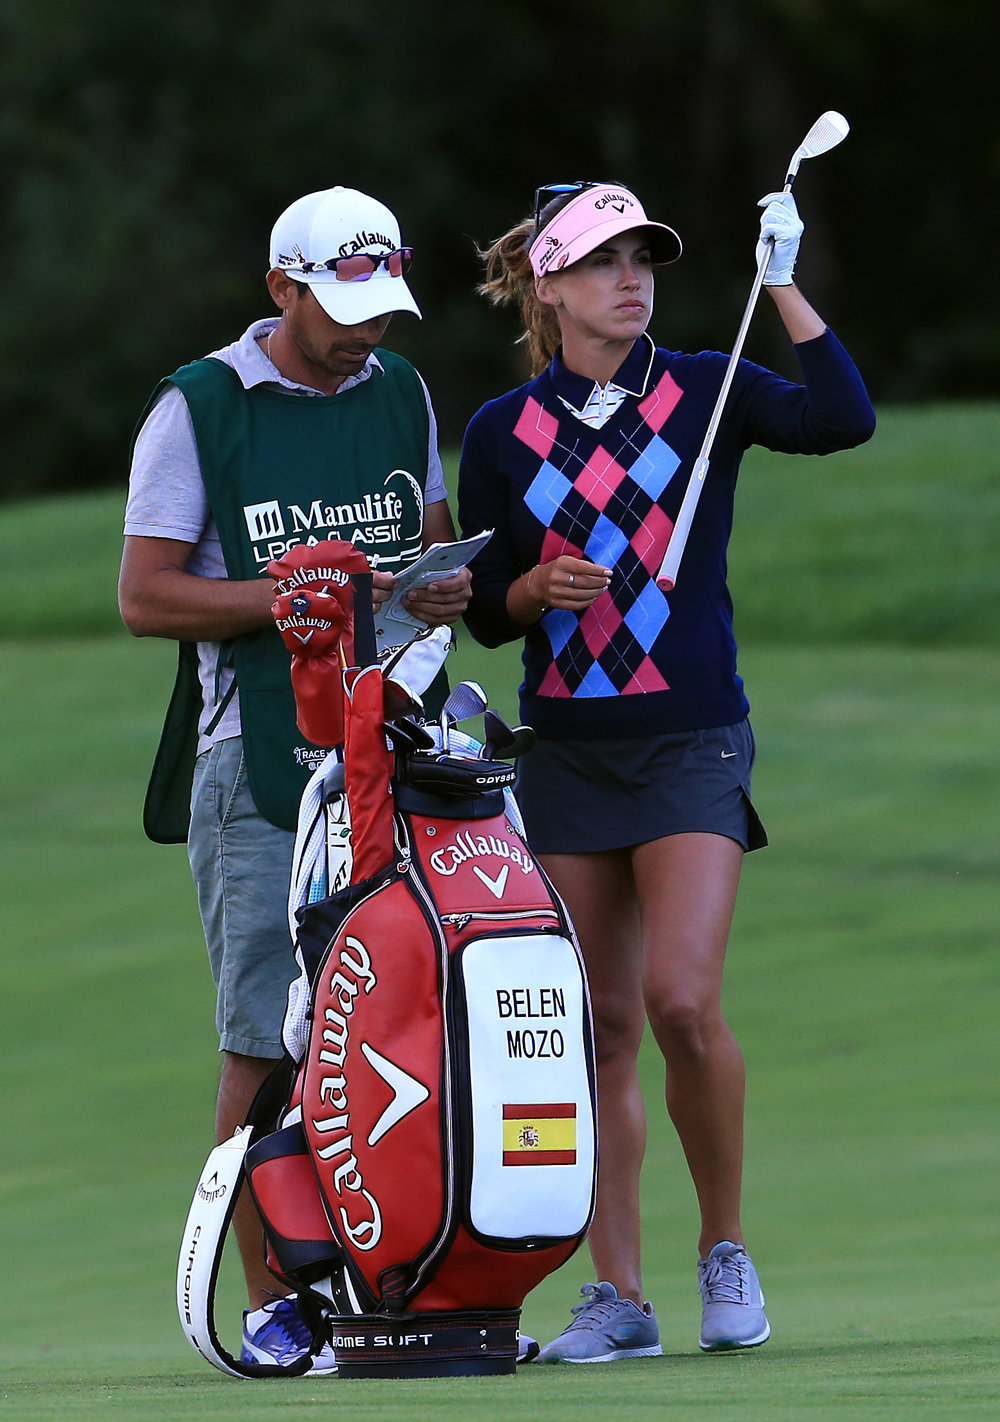 Belen with former caddie Leo Burgos (Argentina) last year in Manulife Championship, Waterloo Canada.